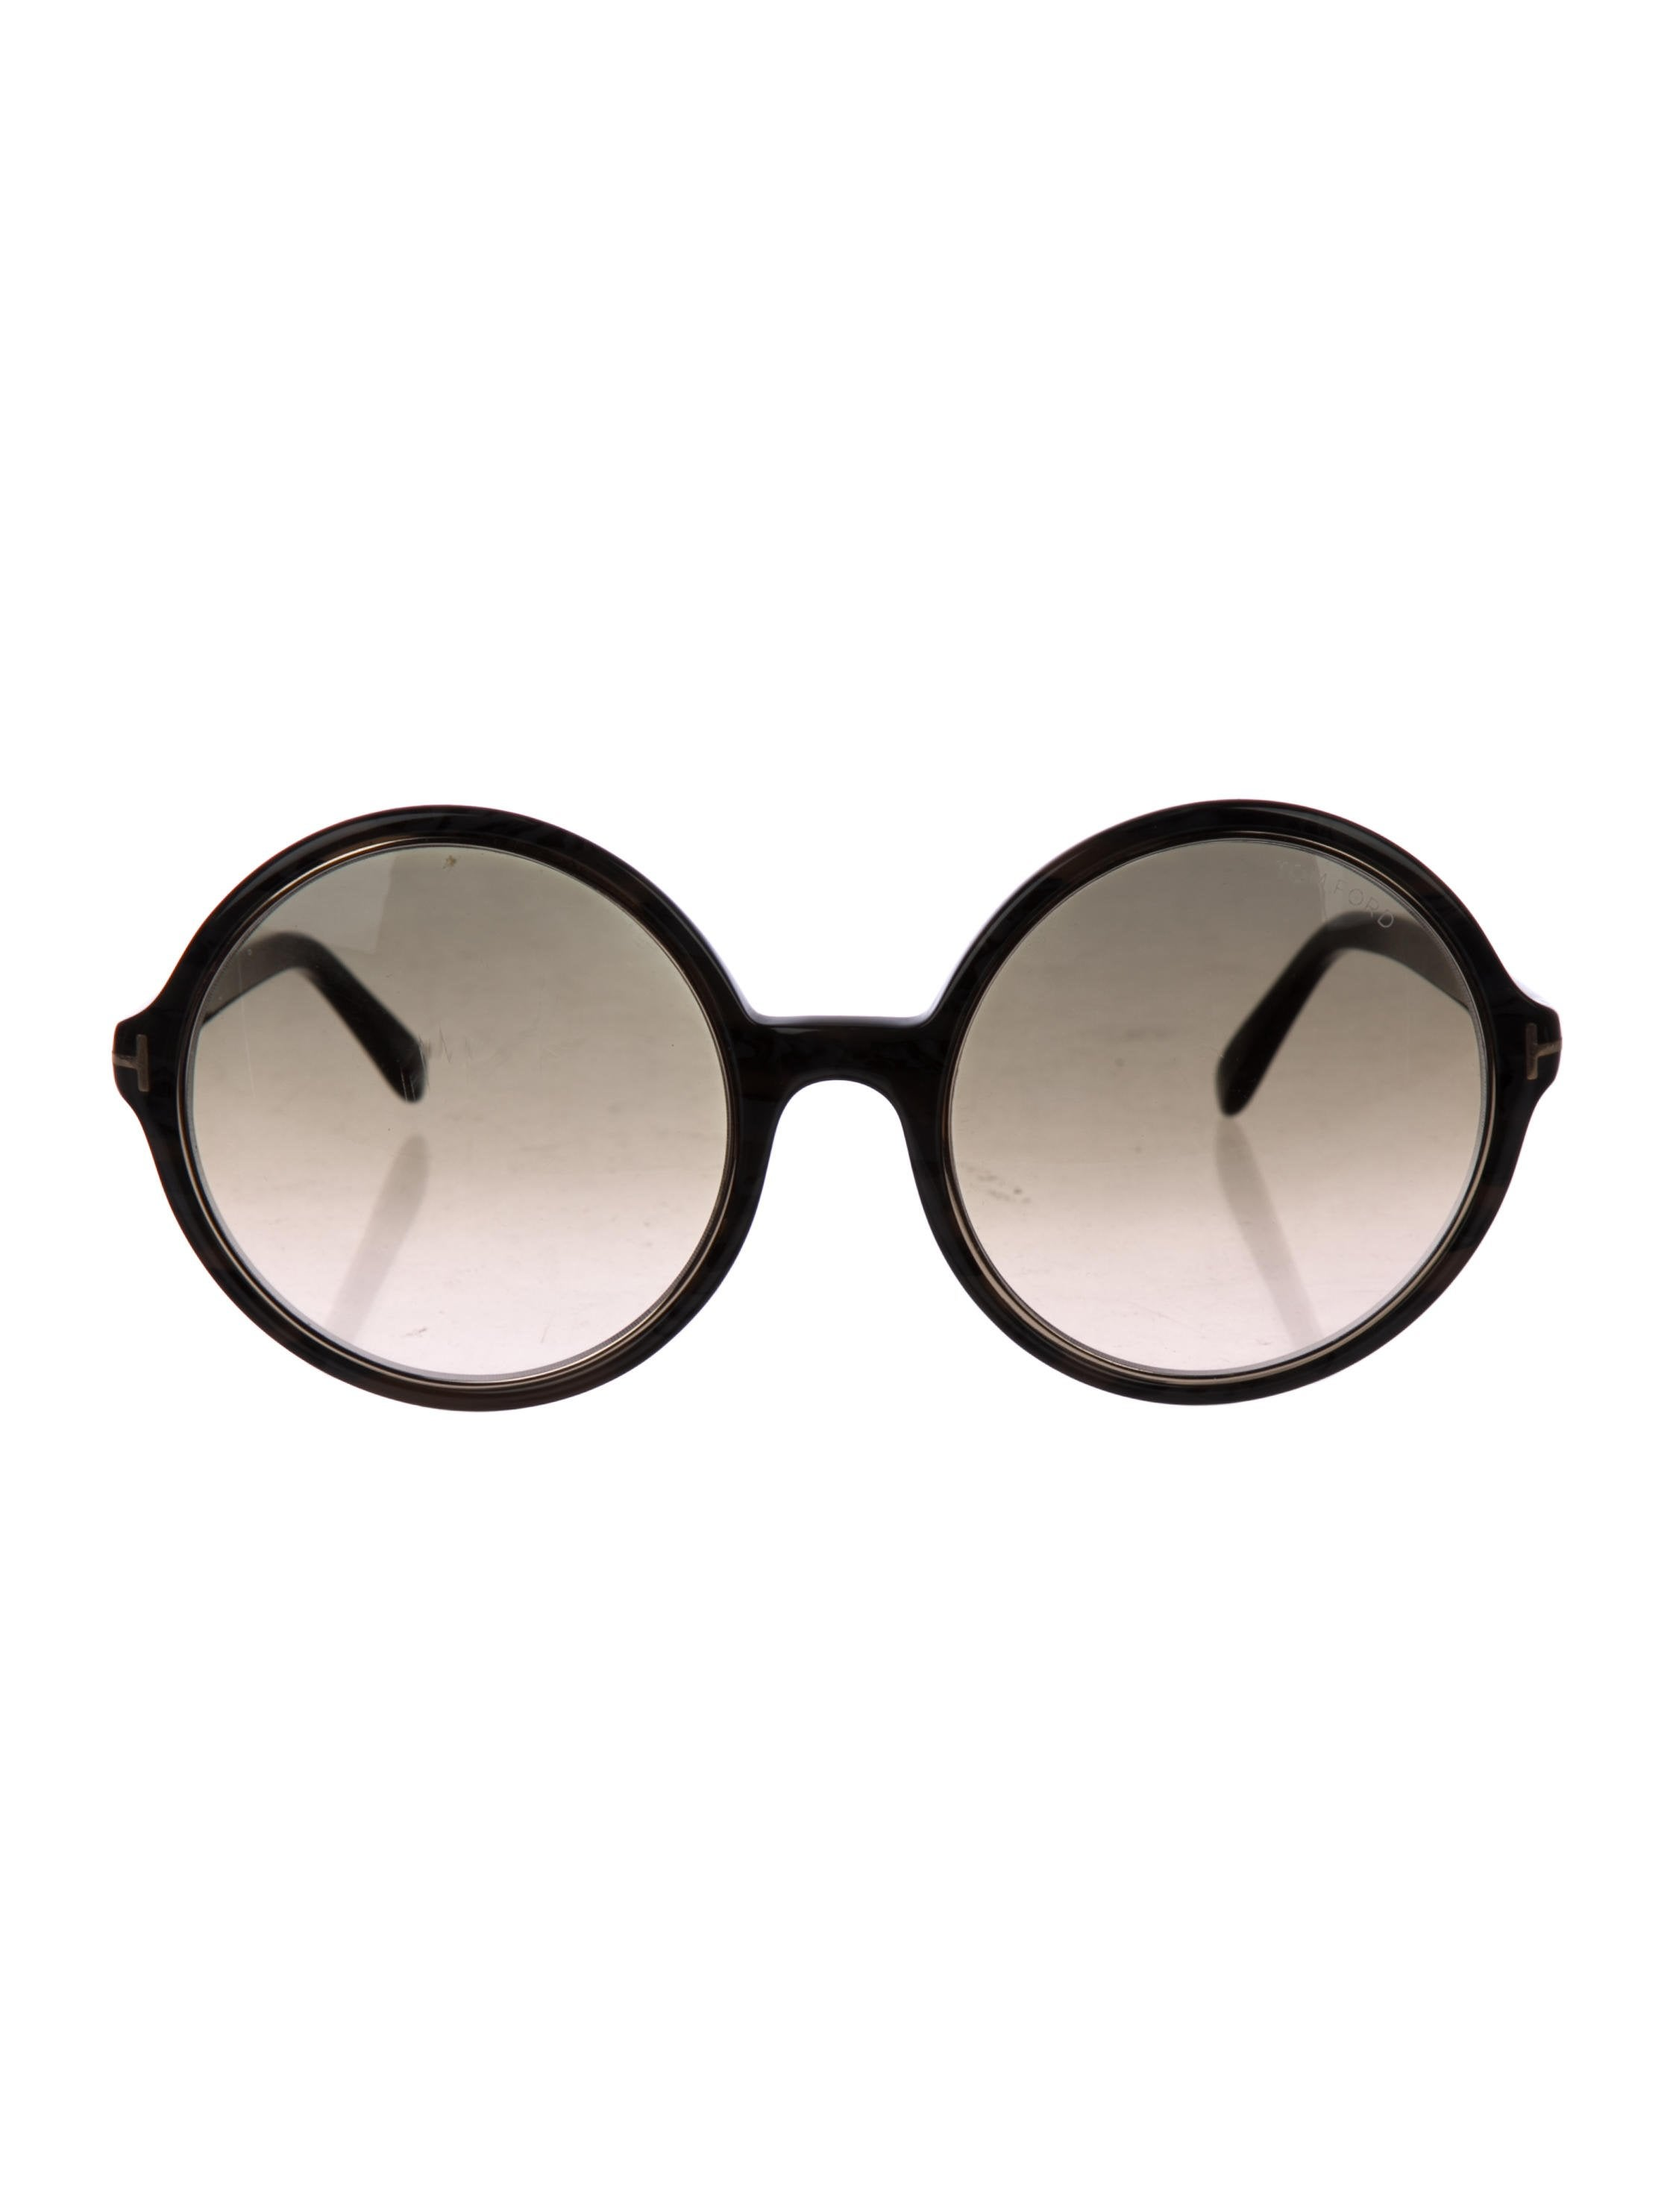 07939796316e7 Tom Ford Carrie Round Sunglasses - Accessories - TOM45284